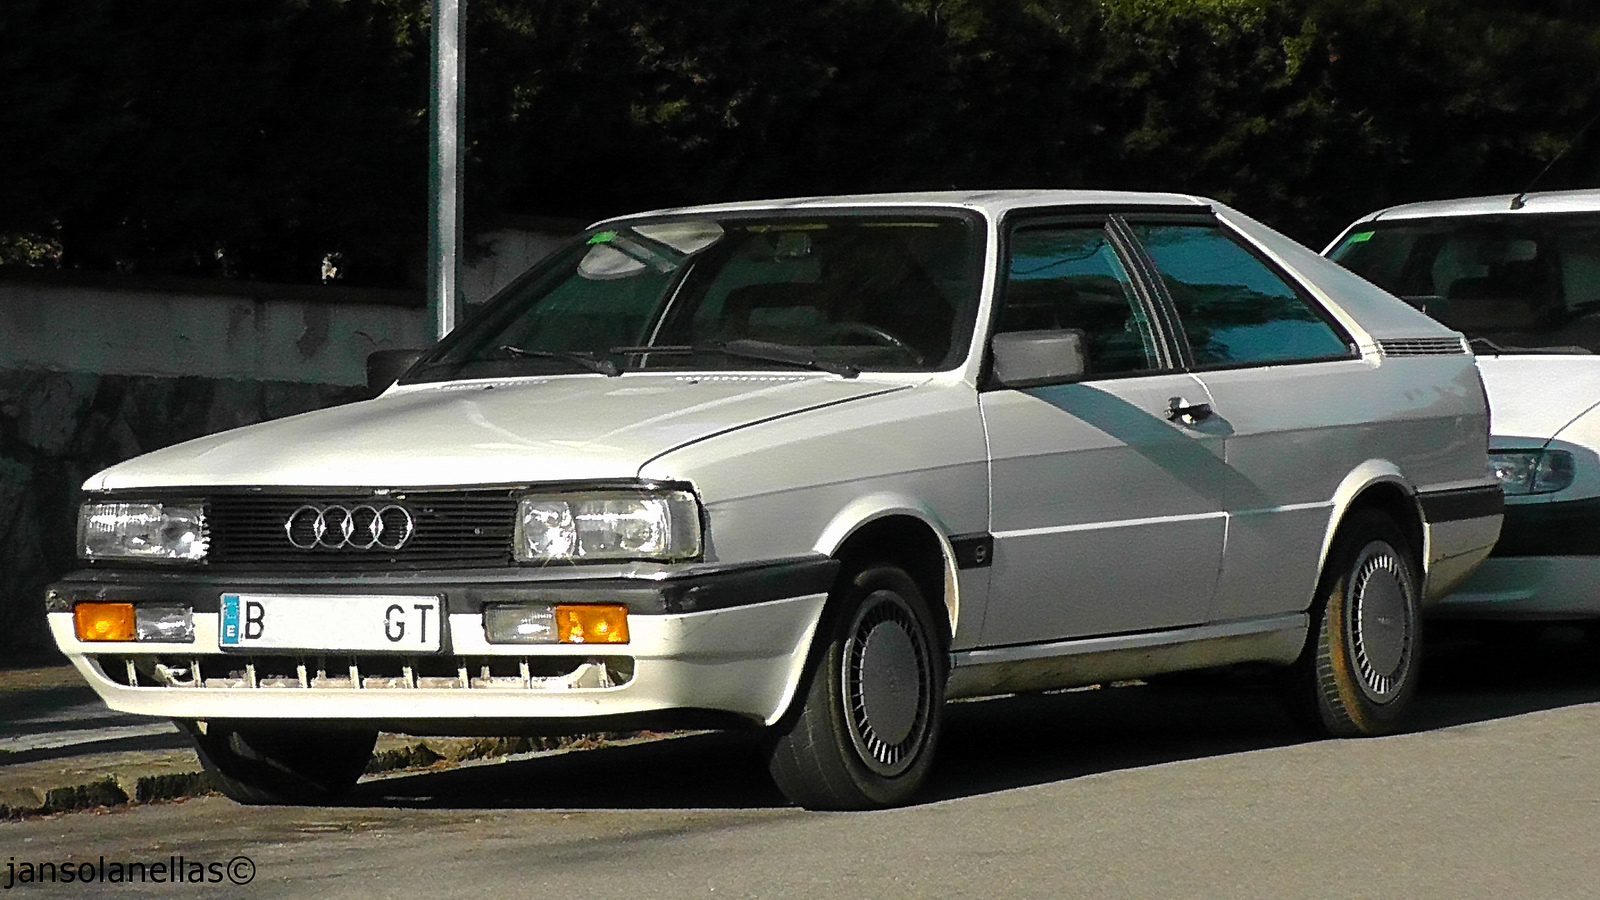 Audi Coupe GT 1987 | Flickr - Photo Sharing!